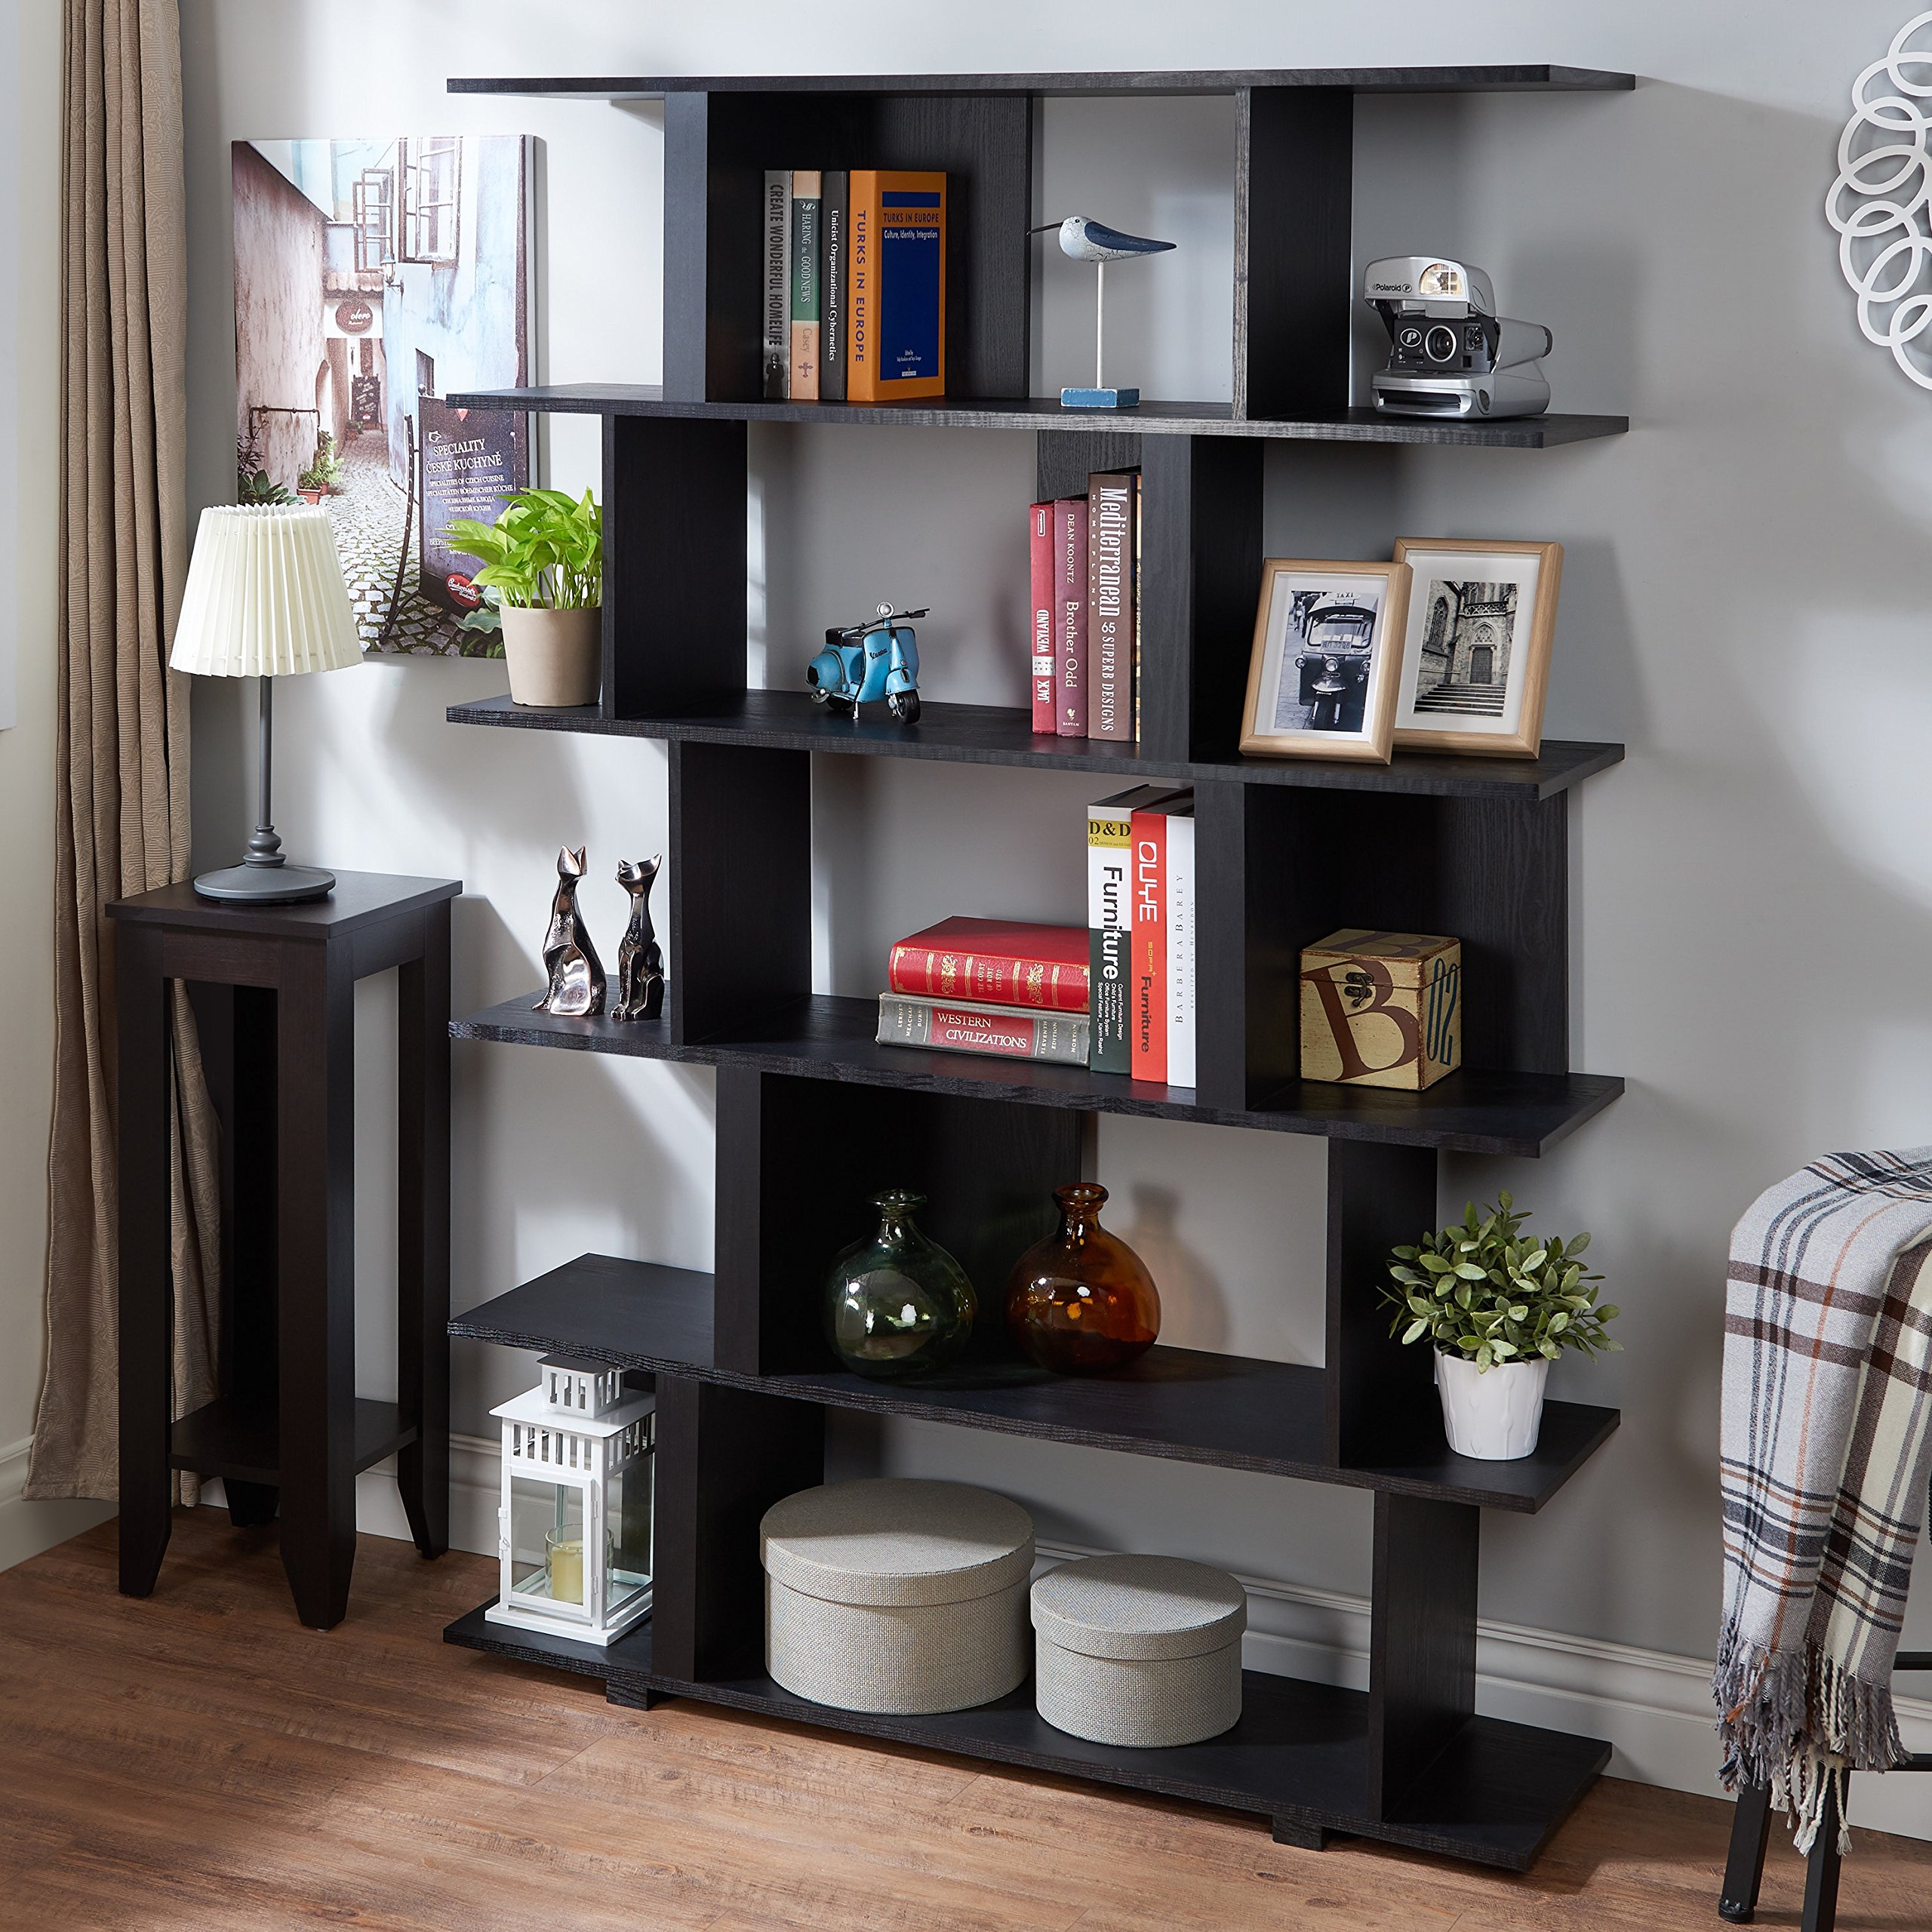 Cheap Ikea Room Divider Bookcase Find Ikea Room Divider